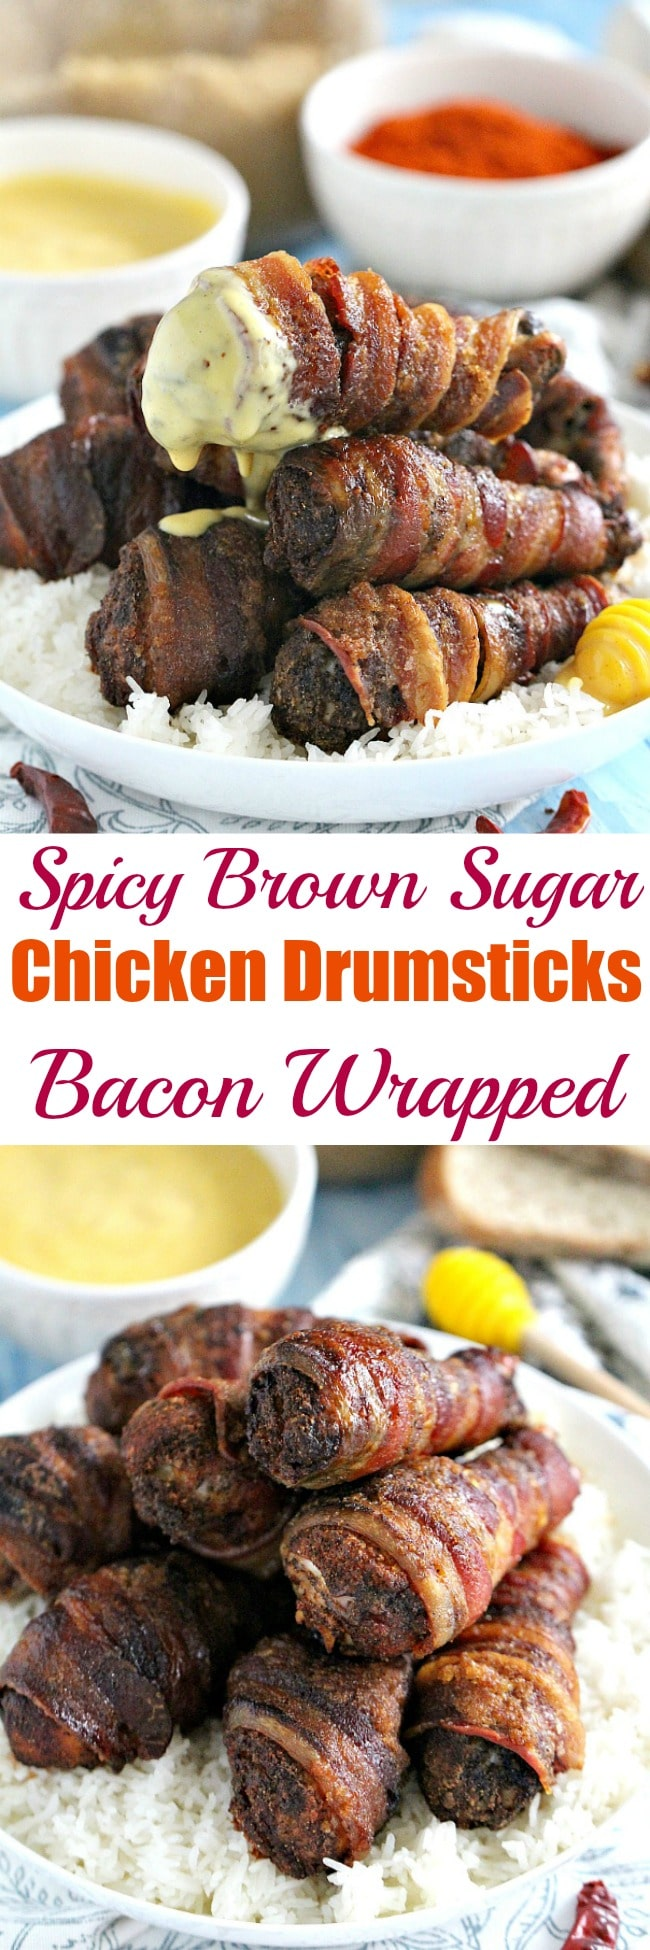 Spicy Brown Sugar Bacon Wrapped Chicken Drumsticks are sweet and spicy and full of flavor, crunchy on the outside and juicy on the inside.